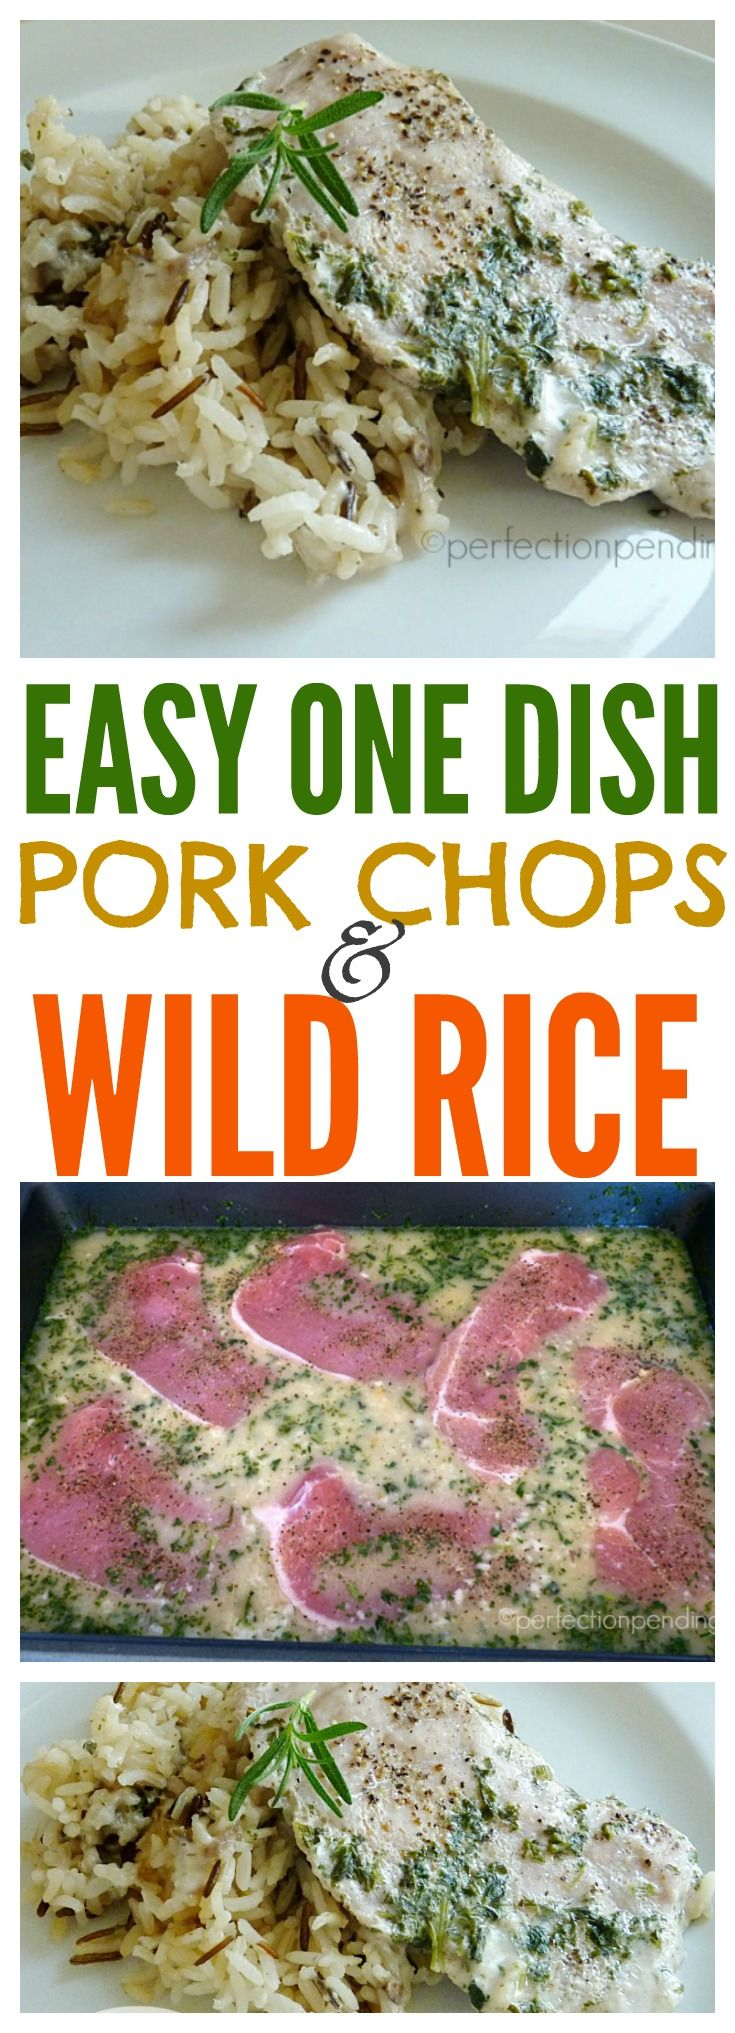 This easy one dish pork chops and wild rice recipe with become a family favorite. It's the perfect kid friendly meal for busy nights, and takes only about 15 minutes to get ready to go in the oven. If you're looking for a meal that will please even little